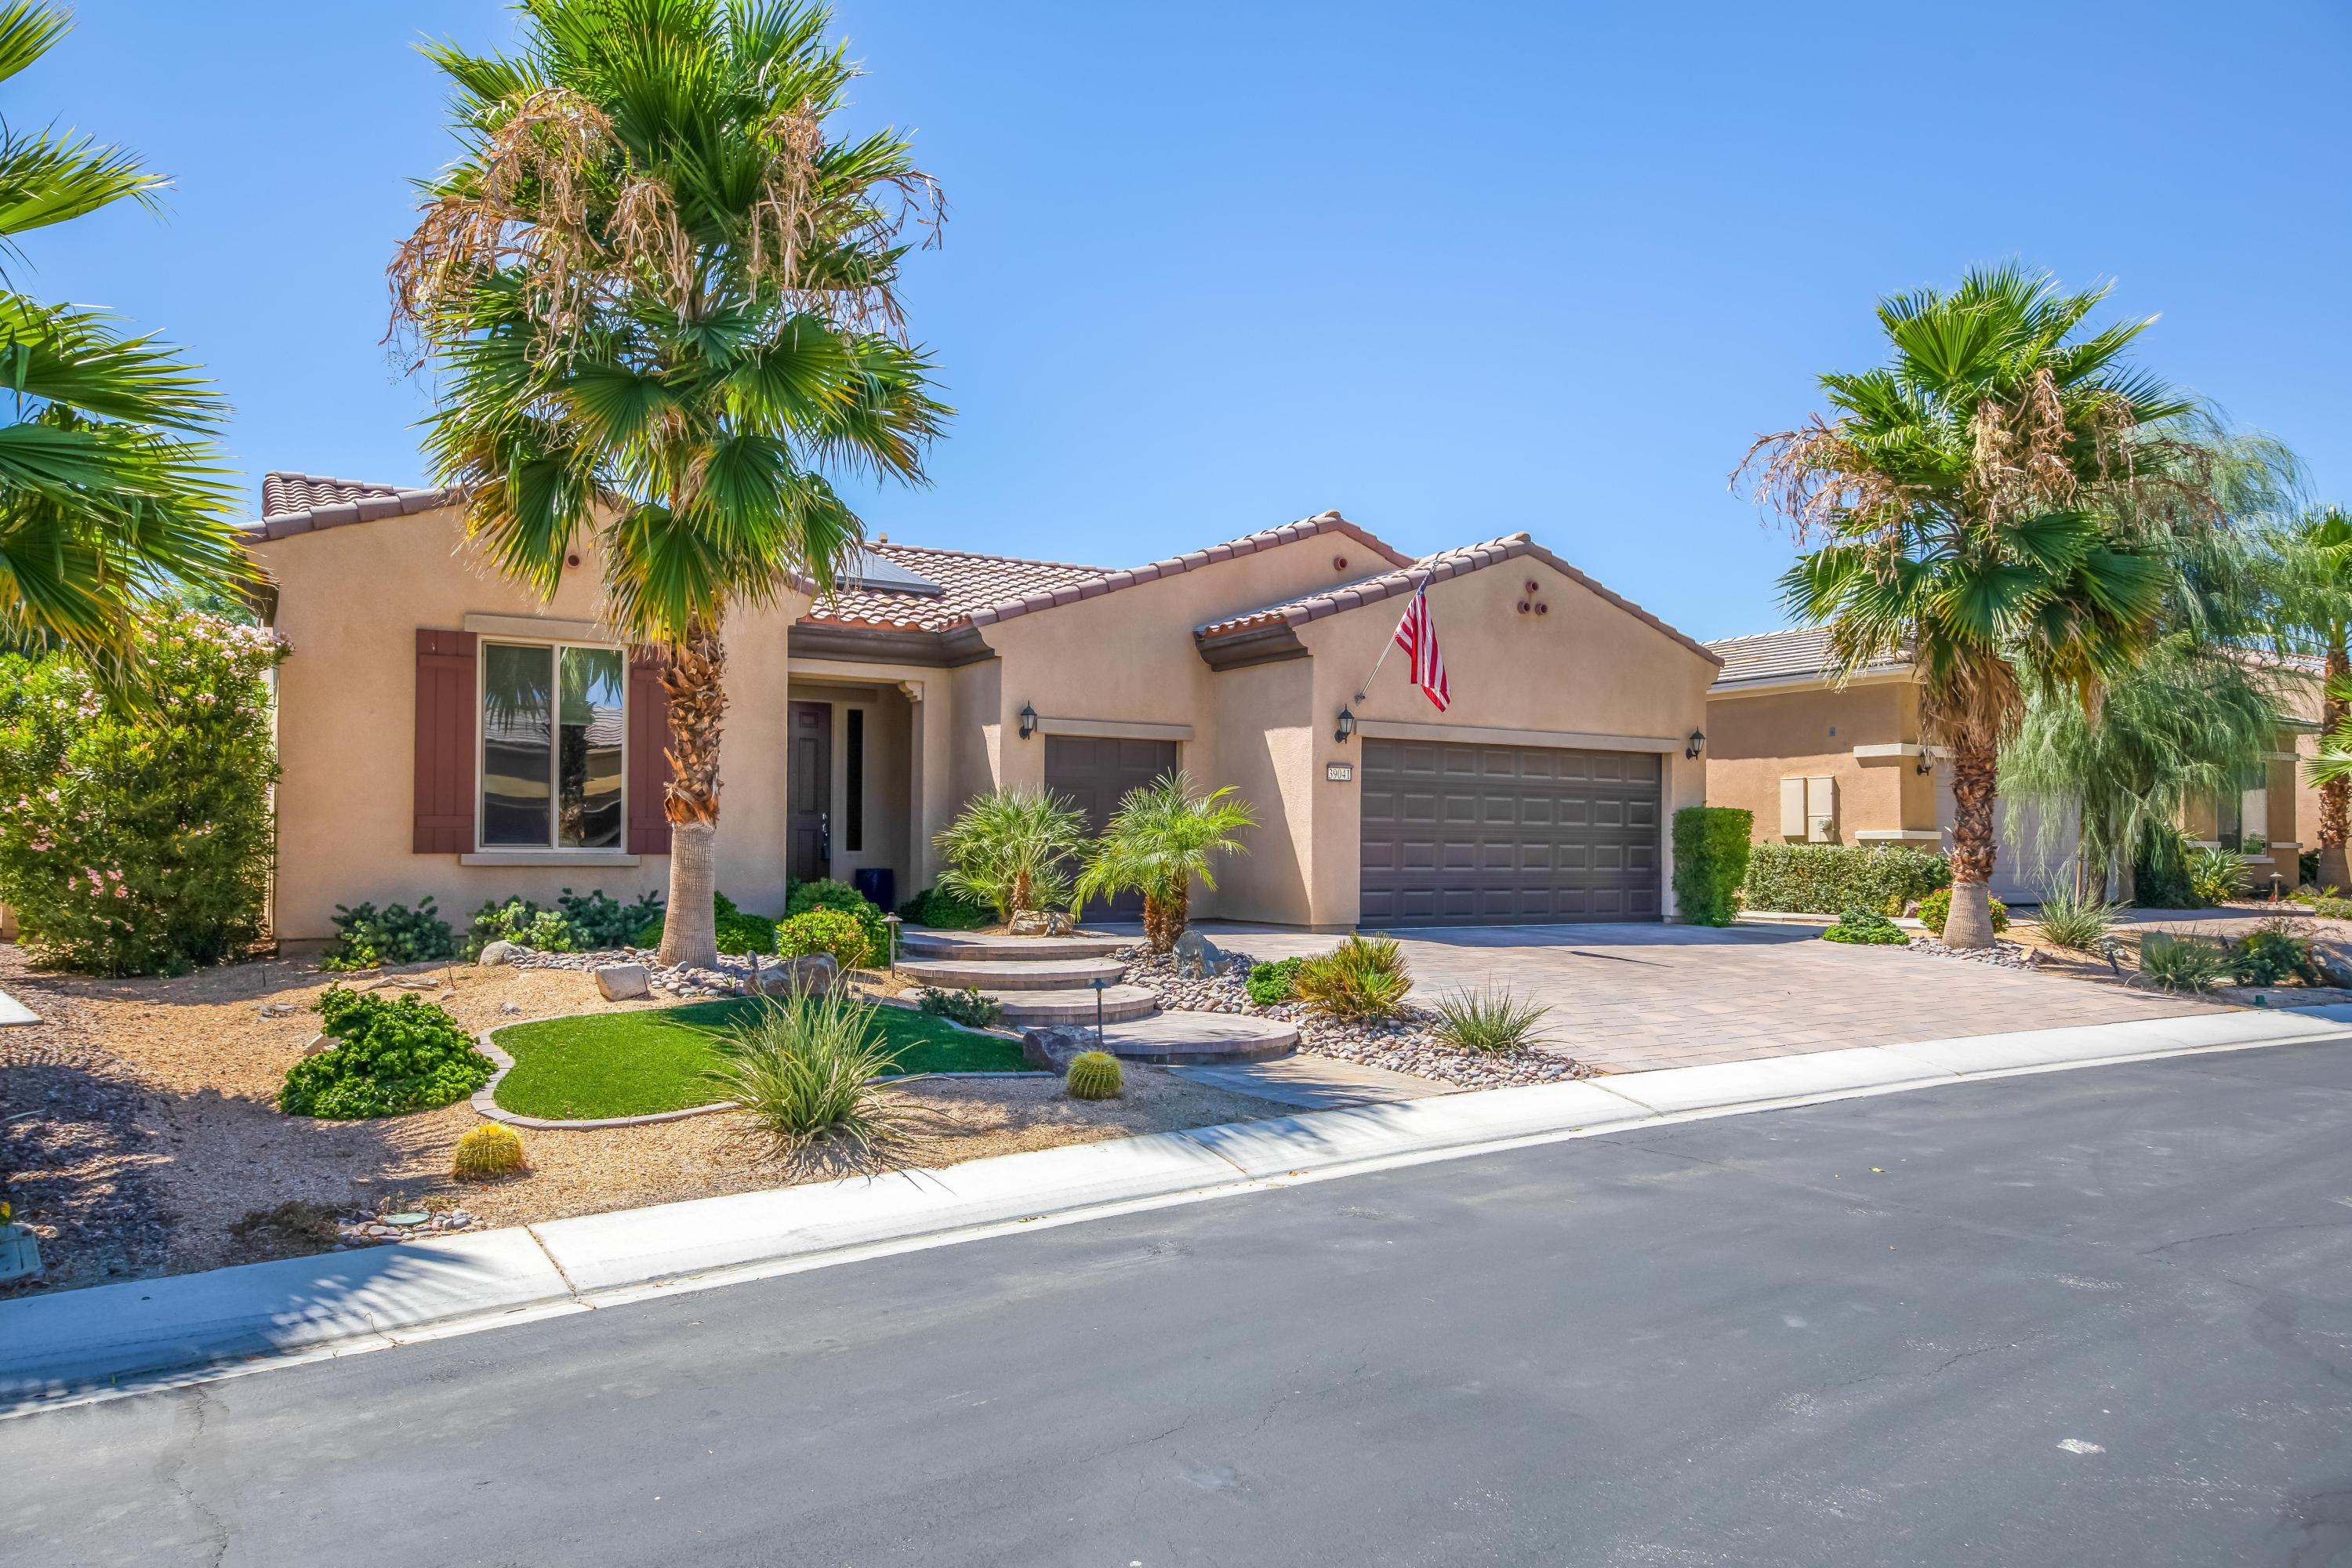 Photo of 39041 Camino Las Hoyes, Indio, CA 92203